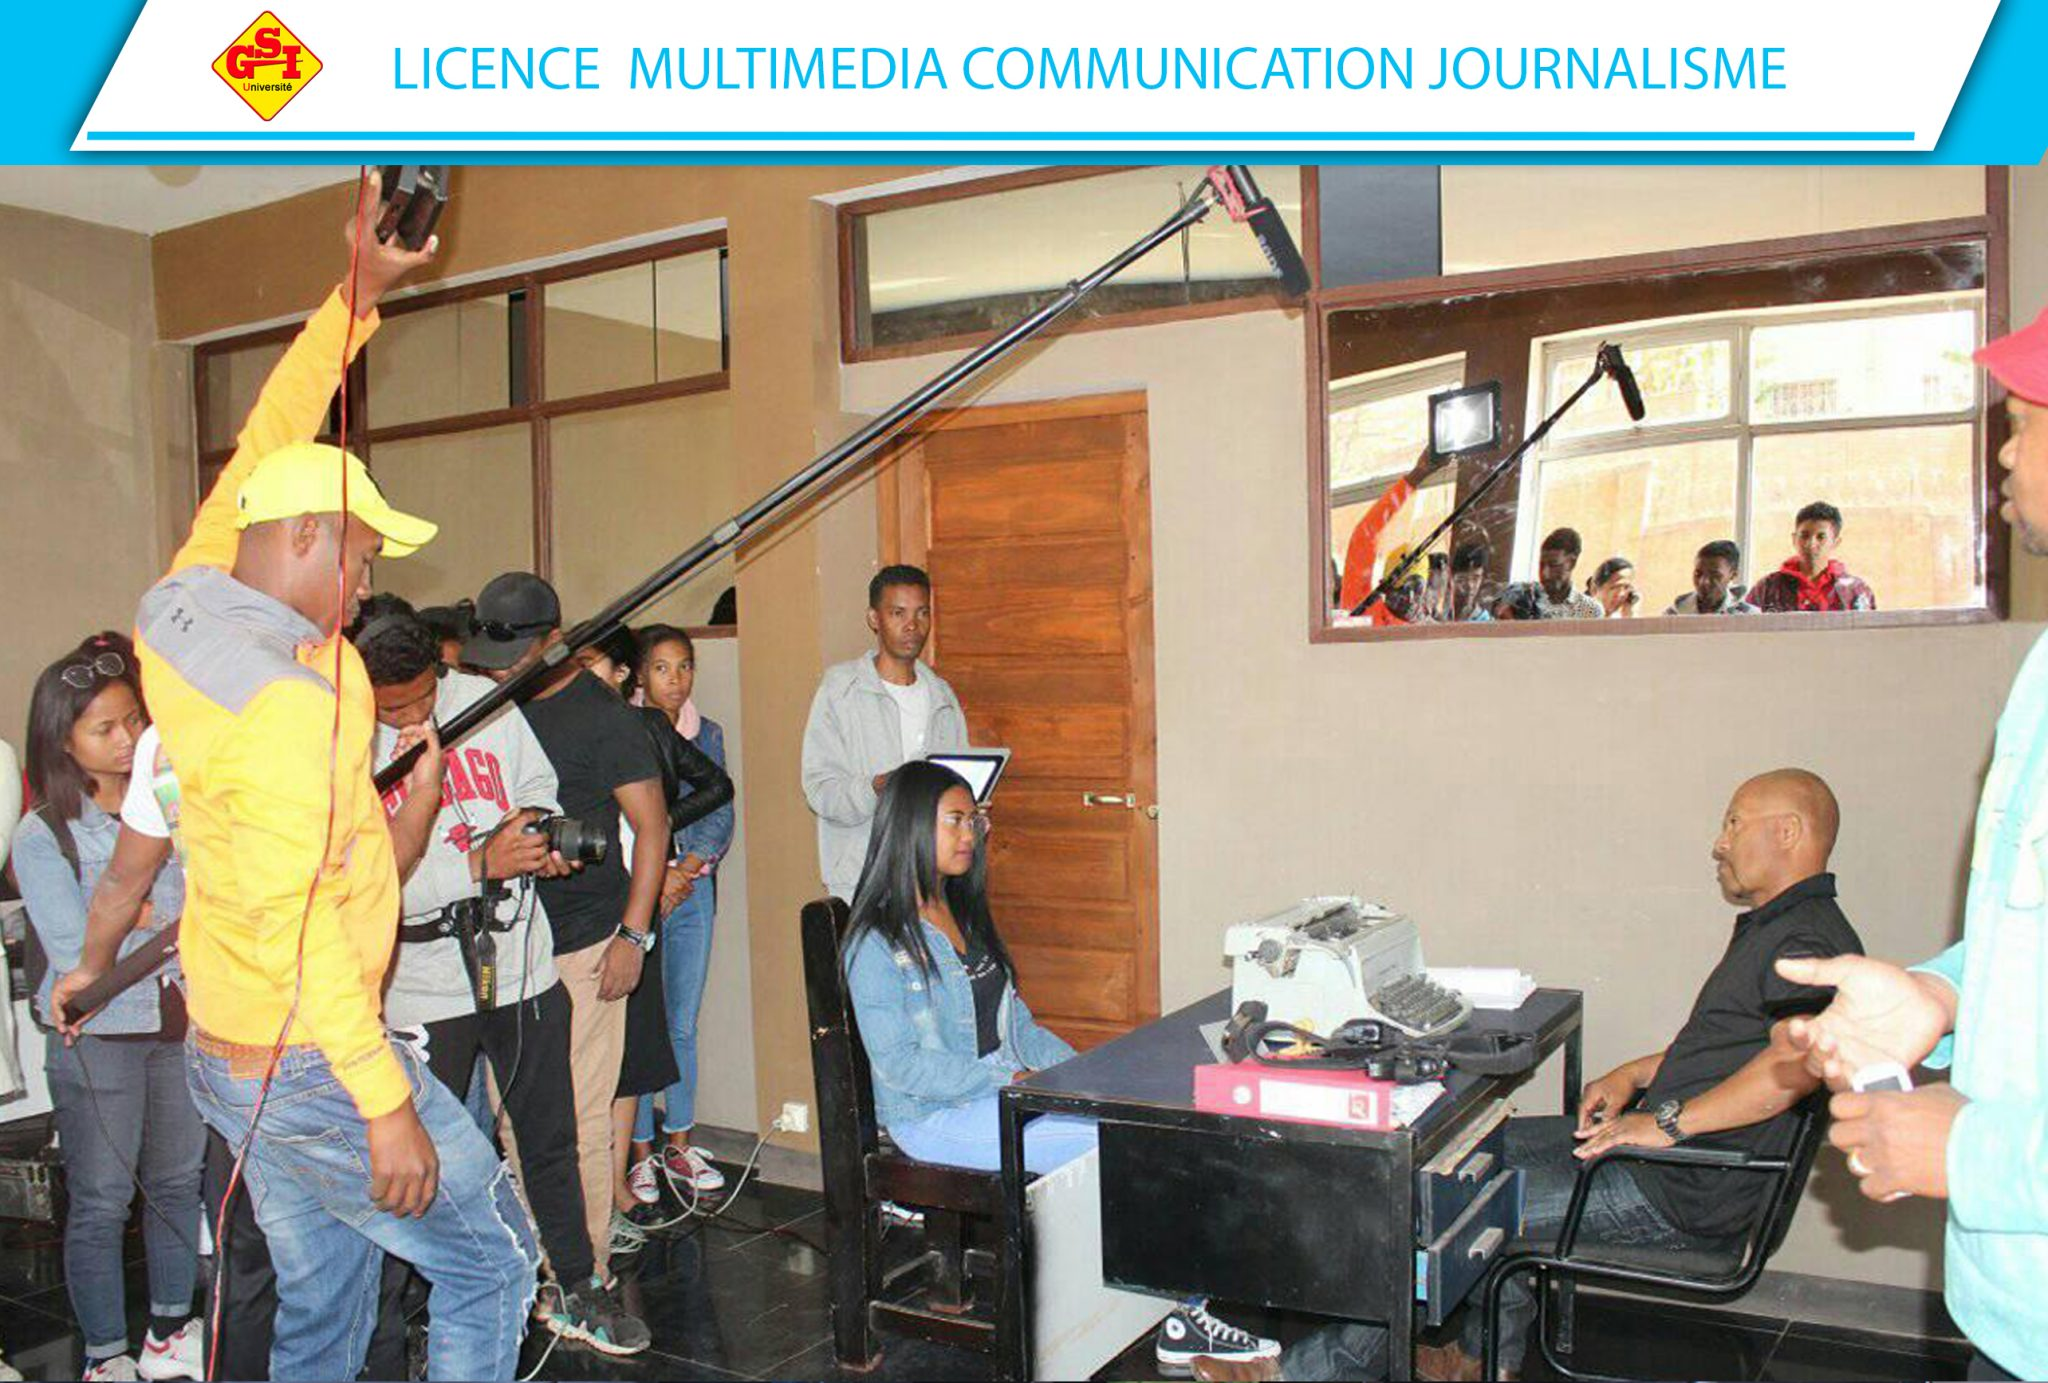 LICENCE MULTIMEDIA COMMUNICATION JOURNALISME